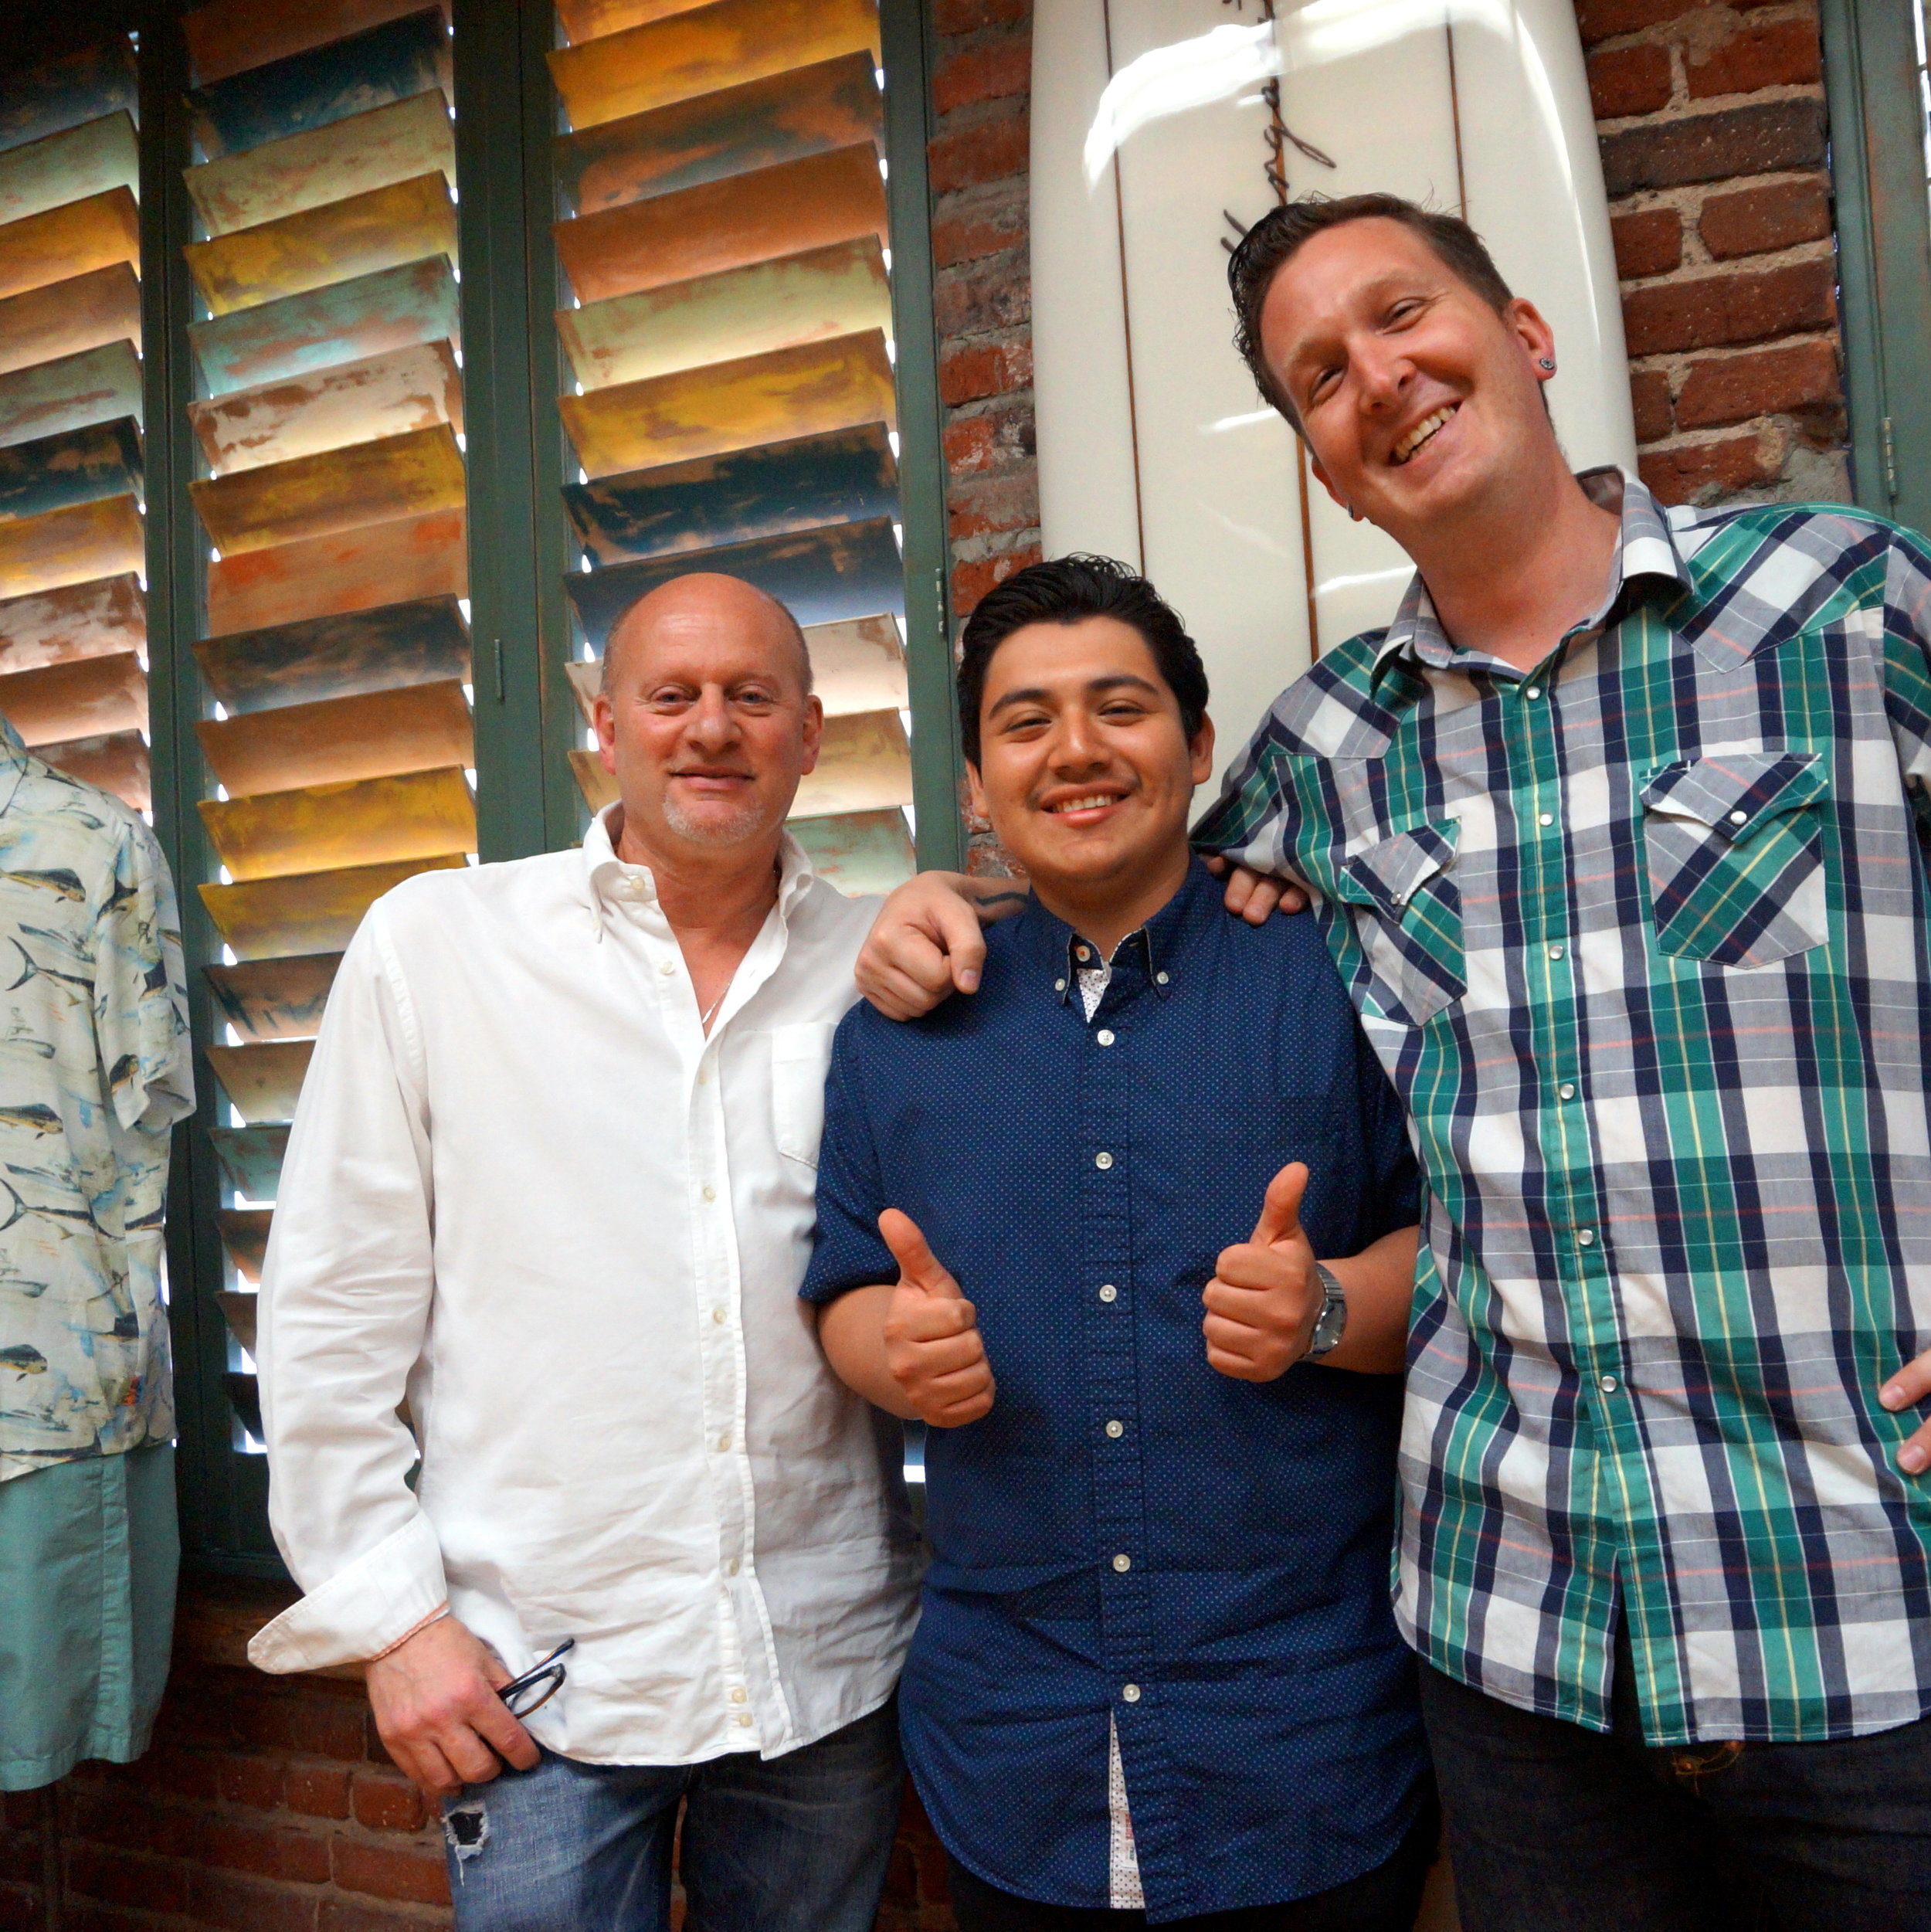 Julian, an ETA Intern in fashion & graphic design, with his mentors at Margaritaville Apparel.